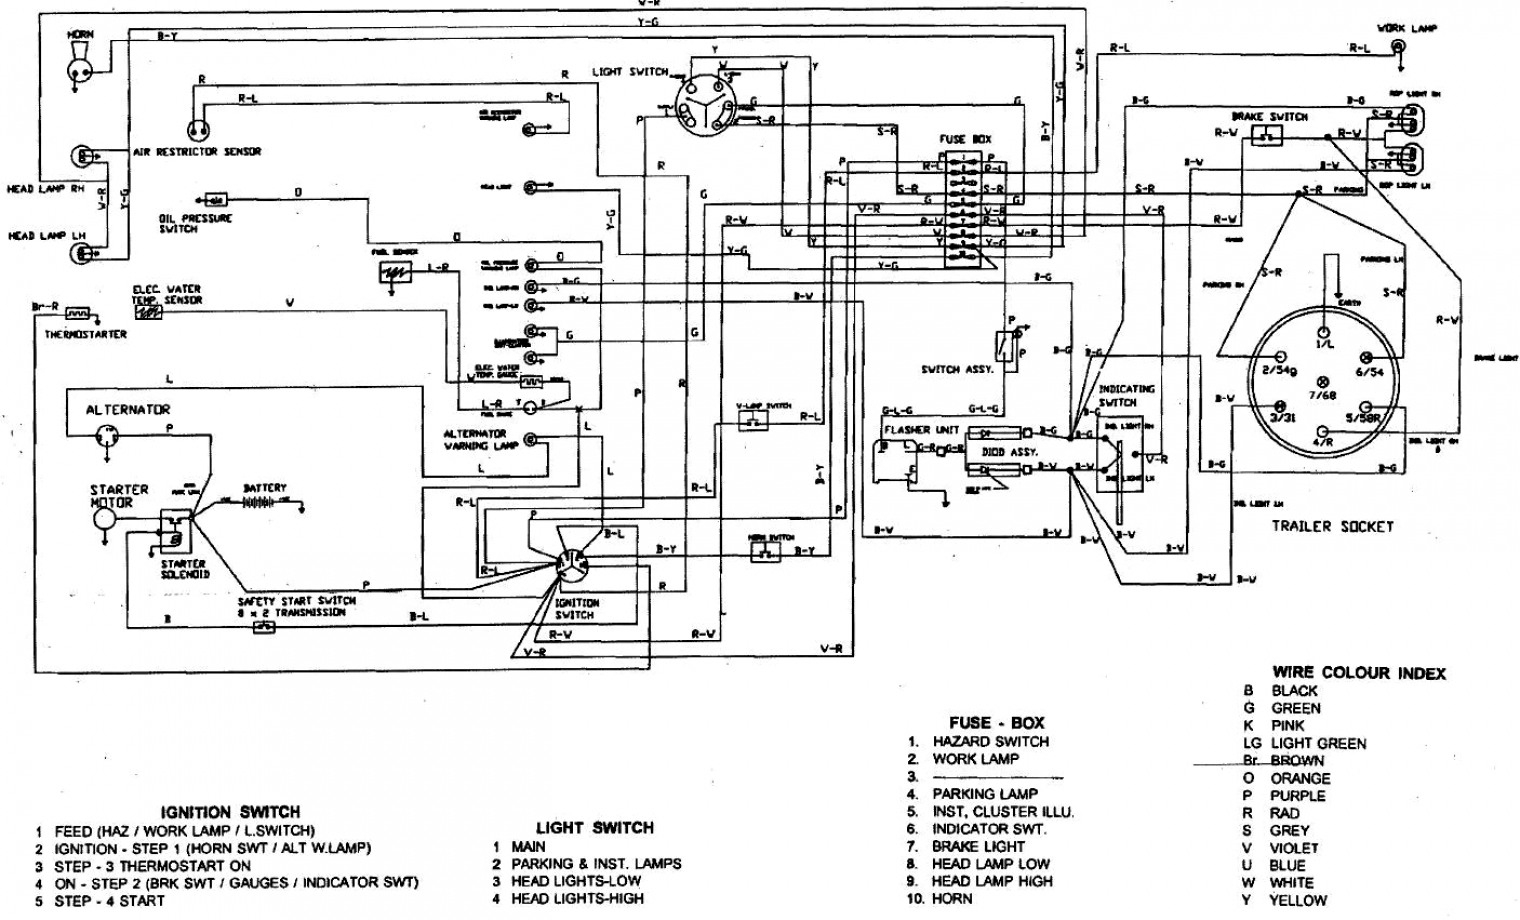 Lawn Diagram Wiring Mower Hw2245Frigidare - All Wiring Diagram Data - Riding Lawn Mower Ignition Switch Wiring Diagram